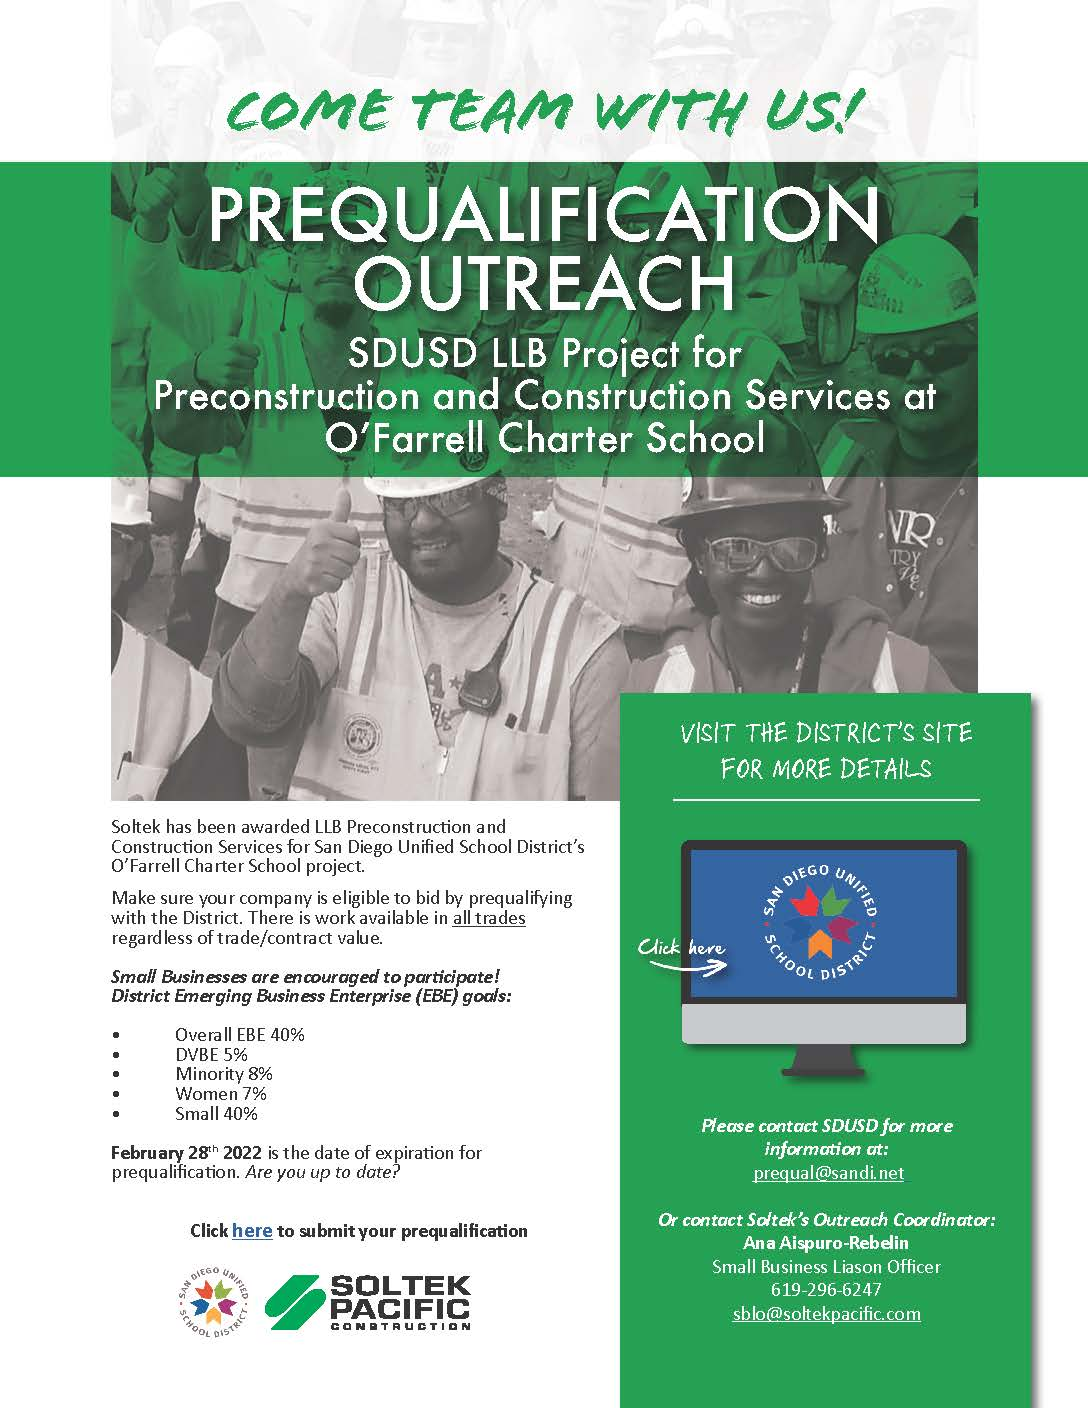 Prequalification Outreach